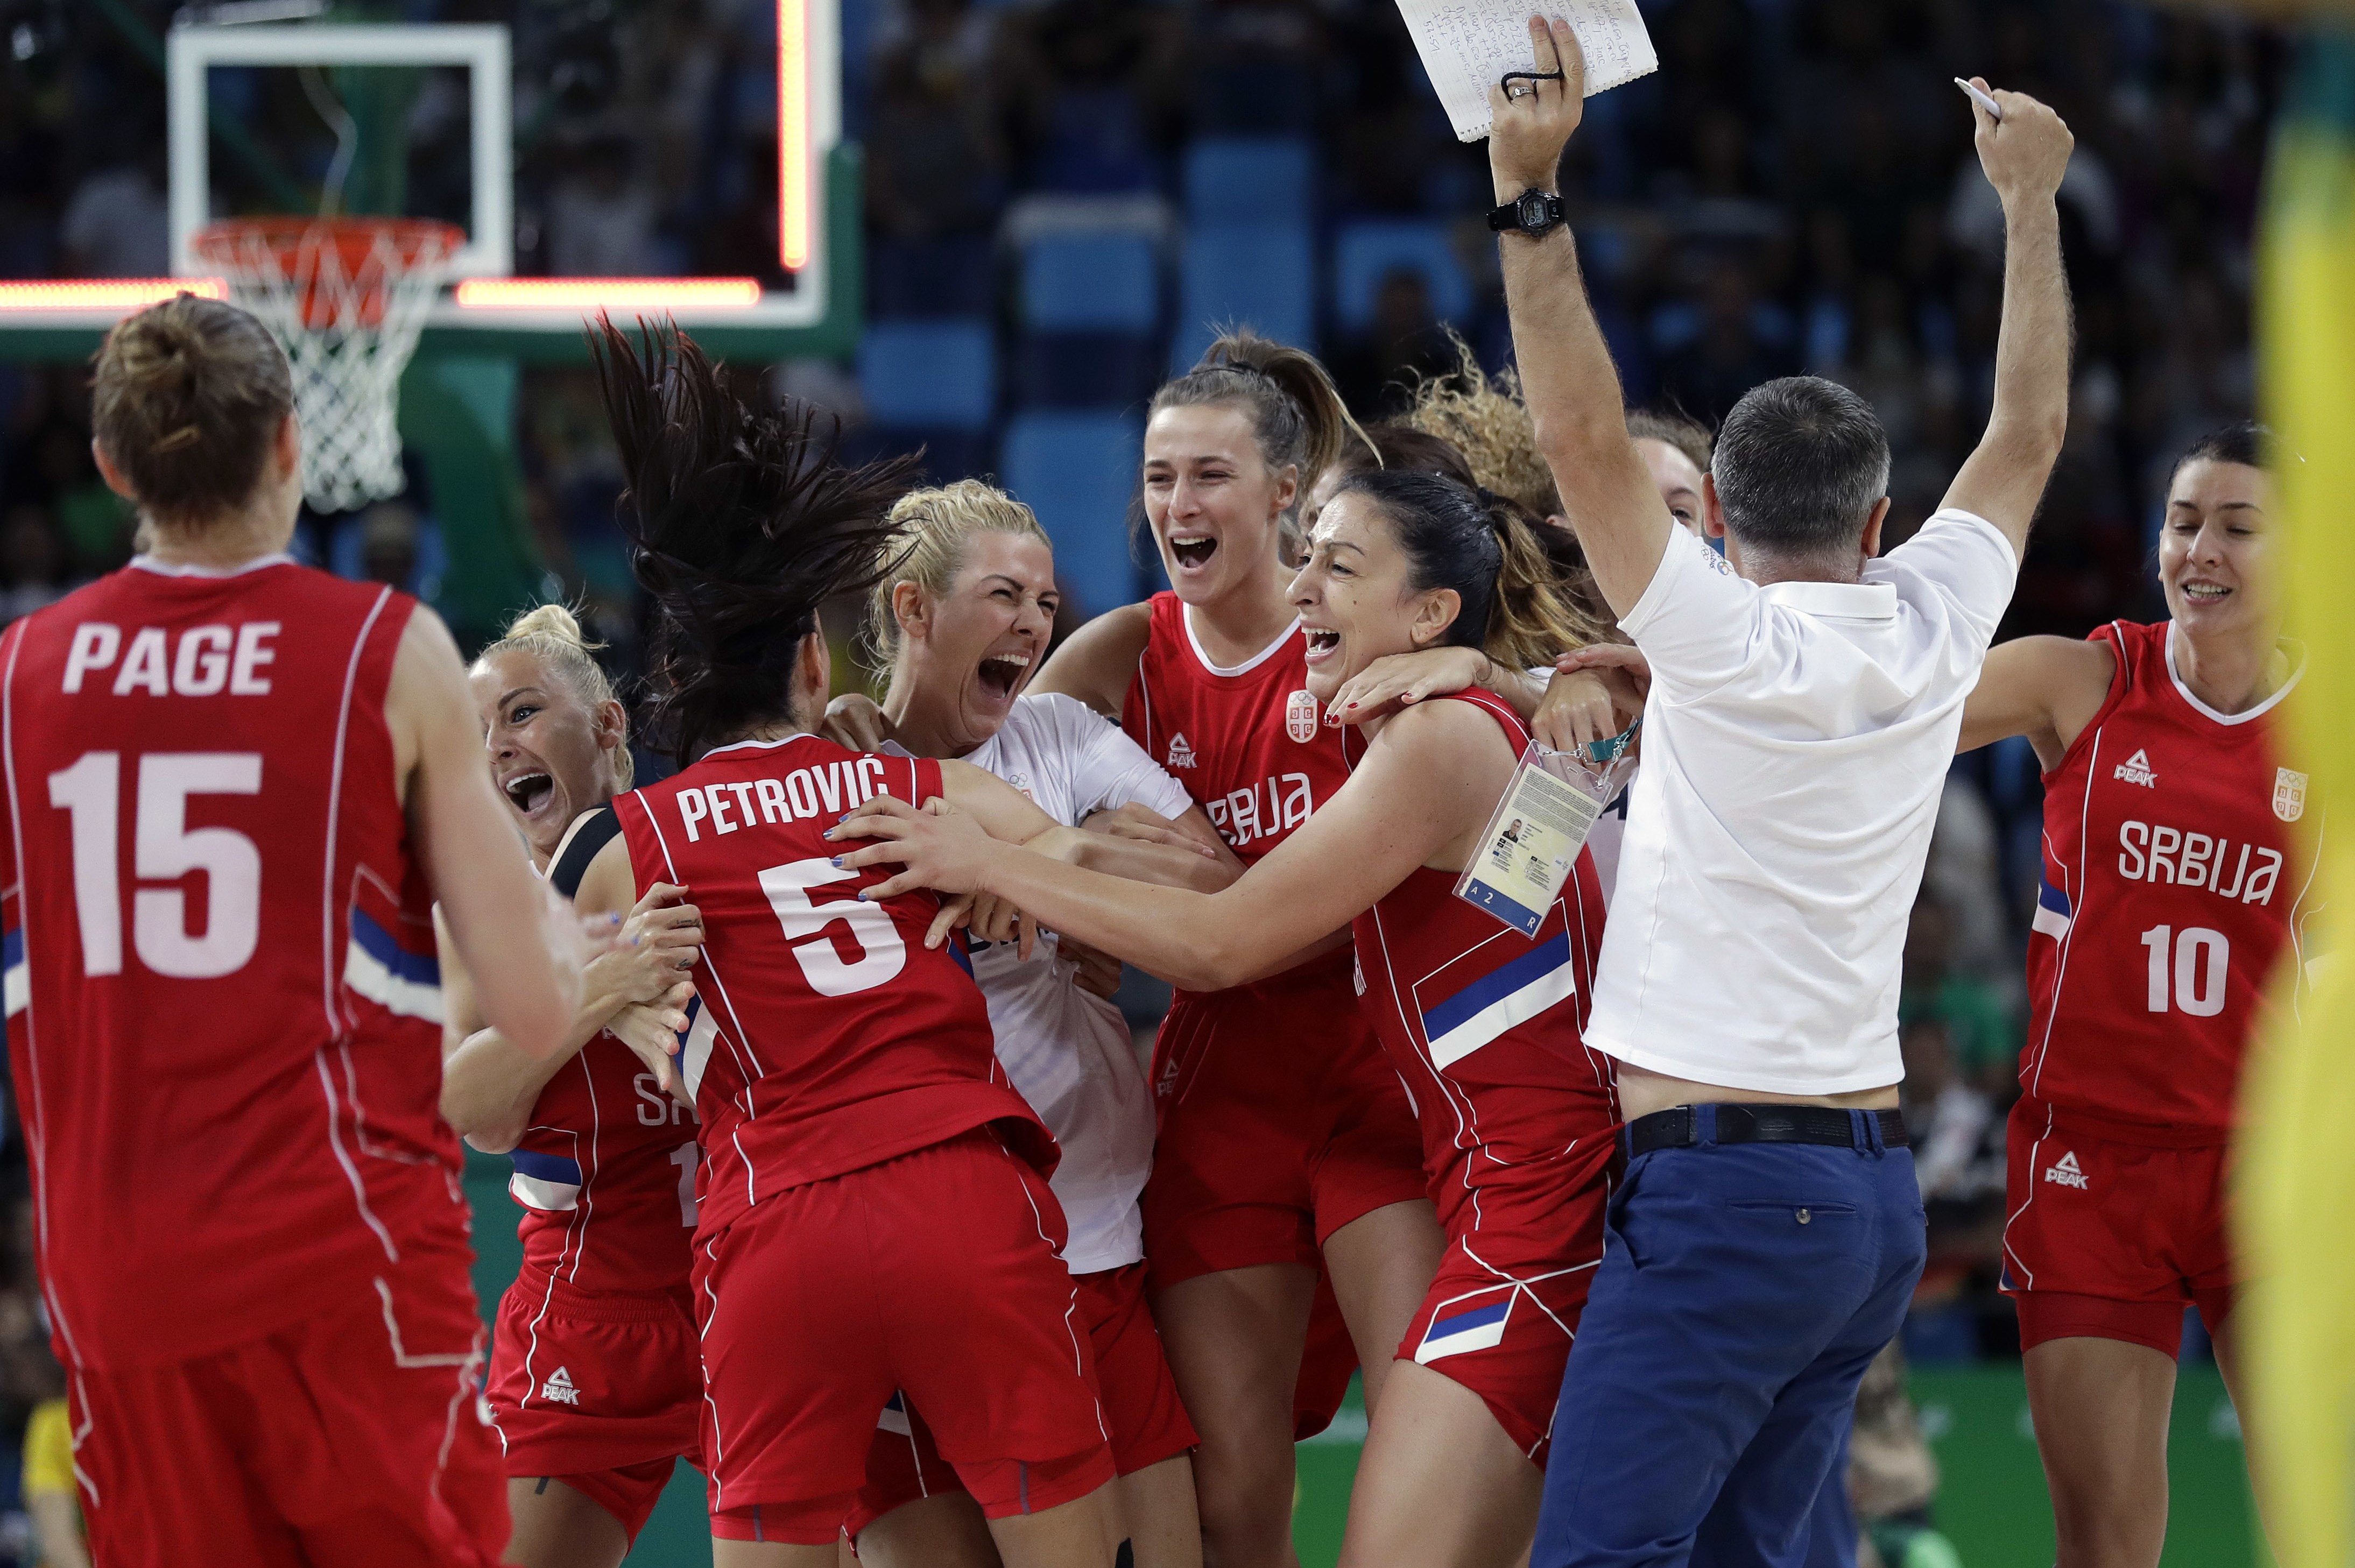 Team Serbia celebrates their win over Australia after a women's quarterfinal round basketball game at the 2016 Summer Olympics in Rio de Janeiro, Brazil, Tuesday, Aug. 16, 2016. (AP Photo/Eric Gay)